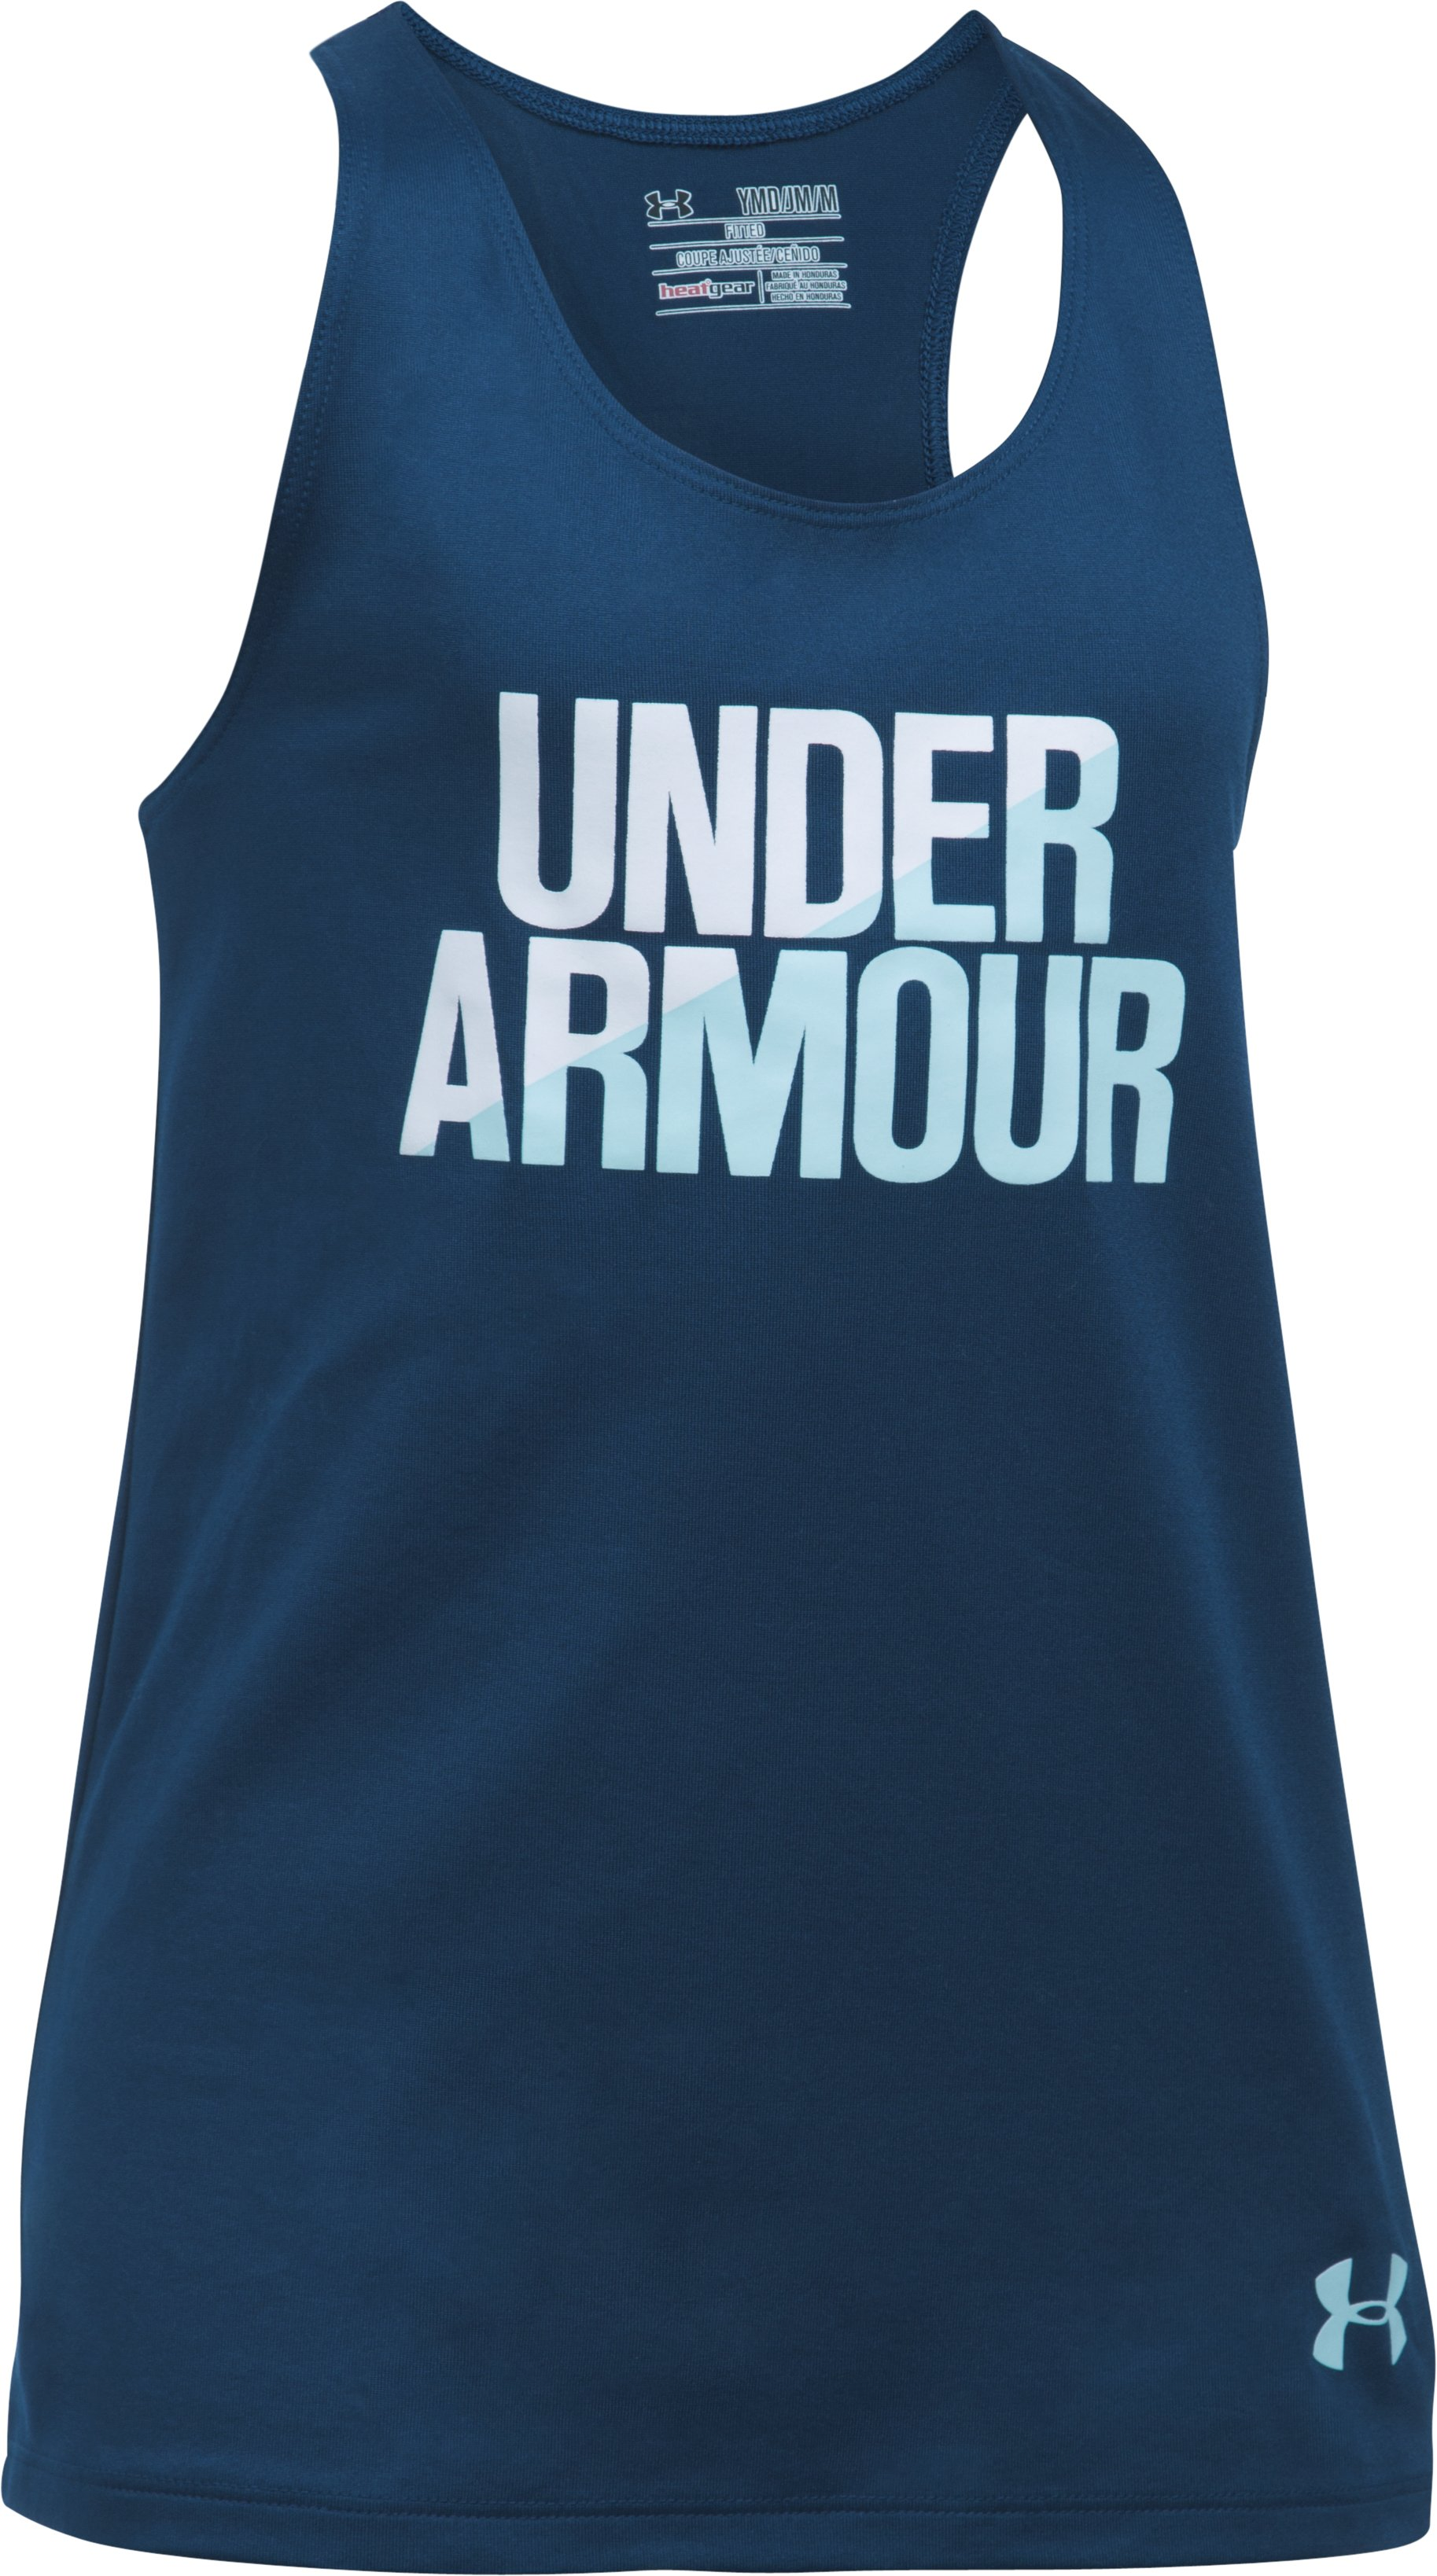 Girls' UA Under Armour Tank, BLACKOUT NAVY, undefined